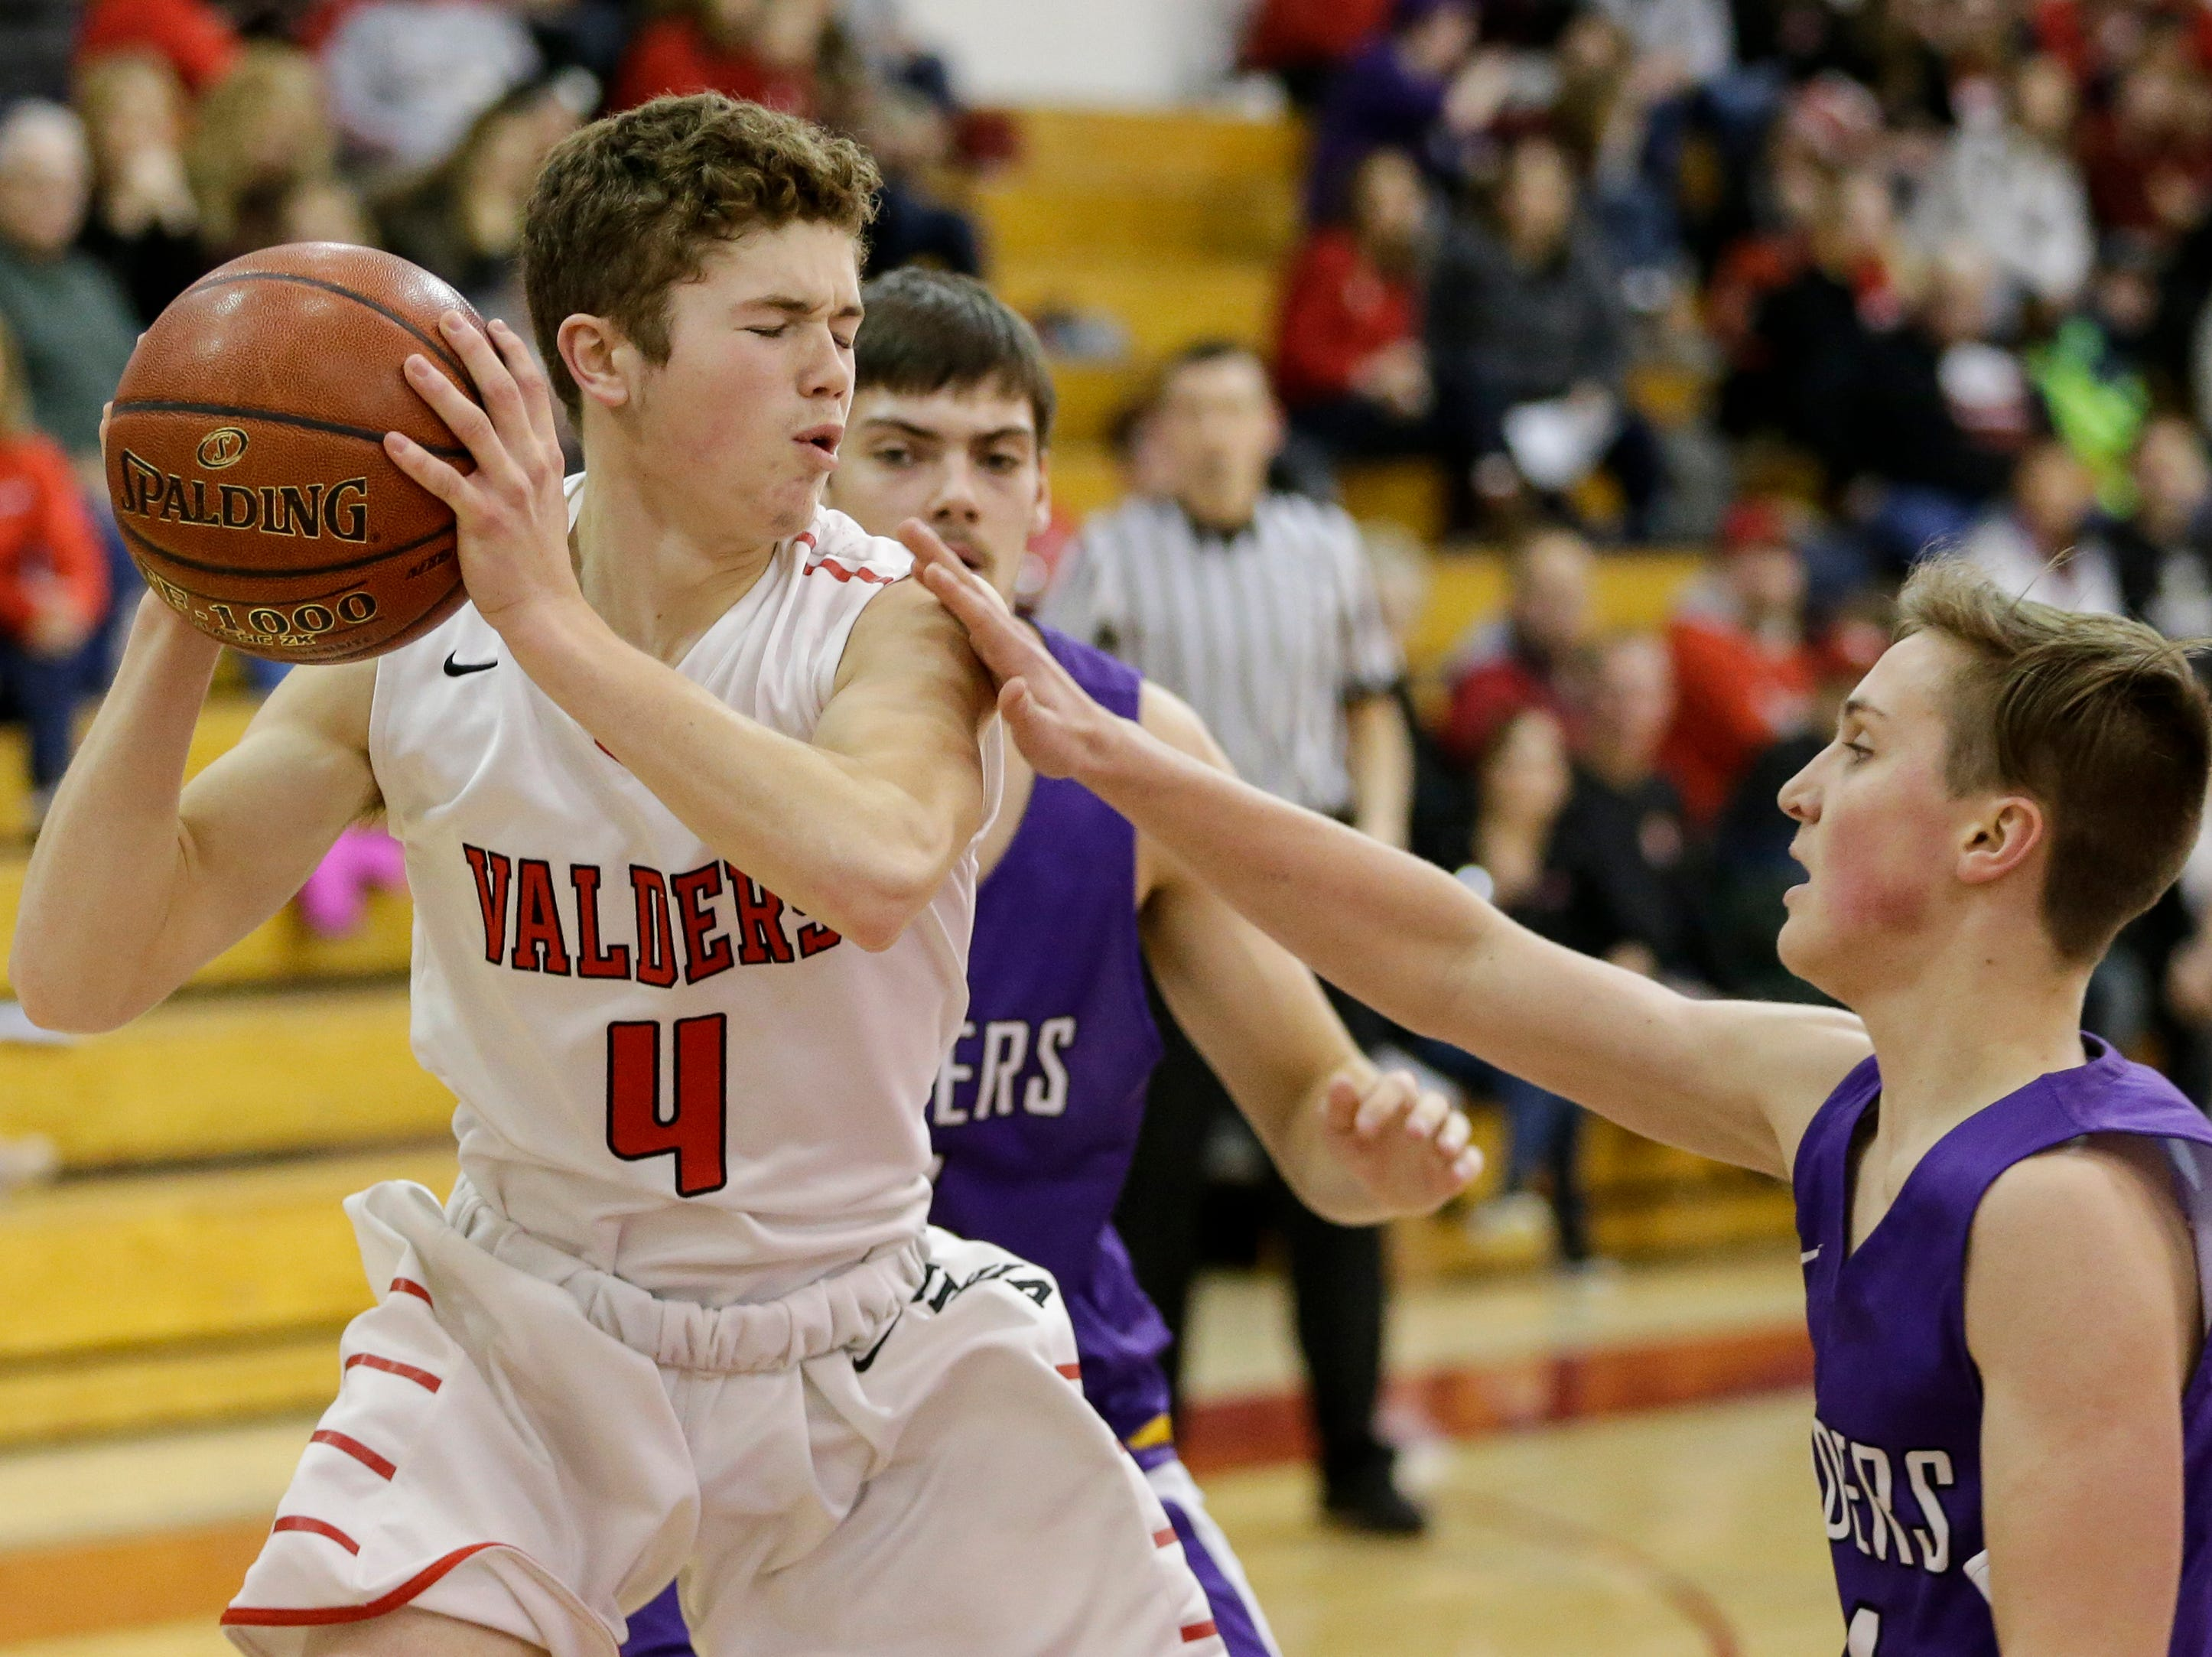 Valders' Nate Griepentrog rebounds against Two Rivers at Valders High School Thursday, January 24, 2019, in Valders, Wis. Joshua Clark/USA TODAY NETWORK-Wisconsin